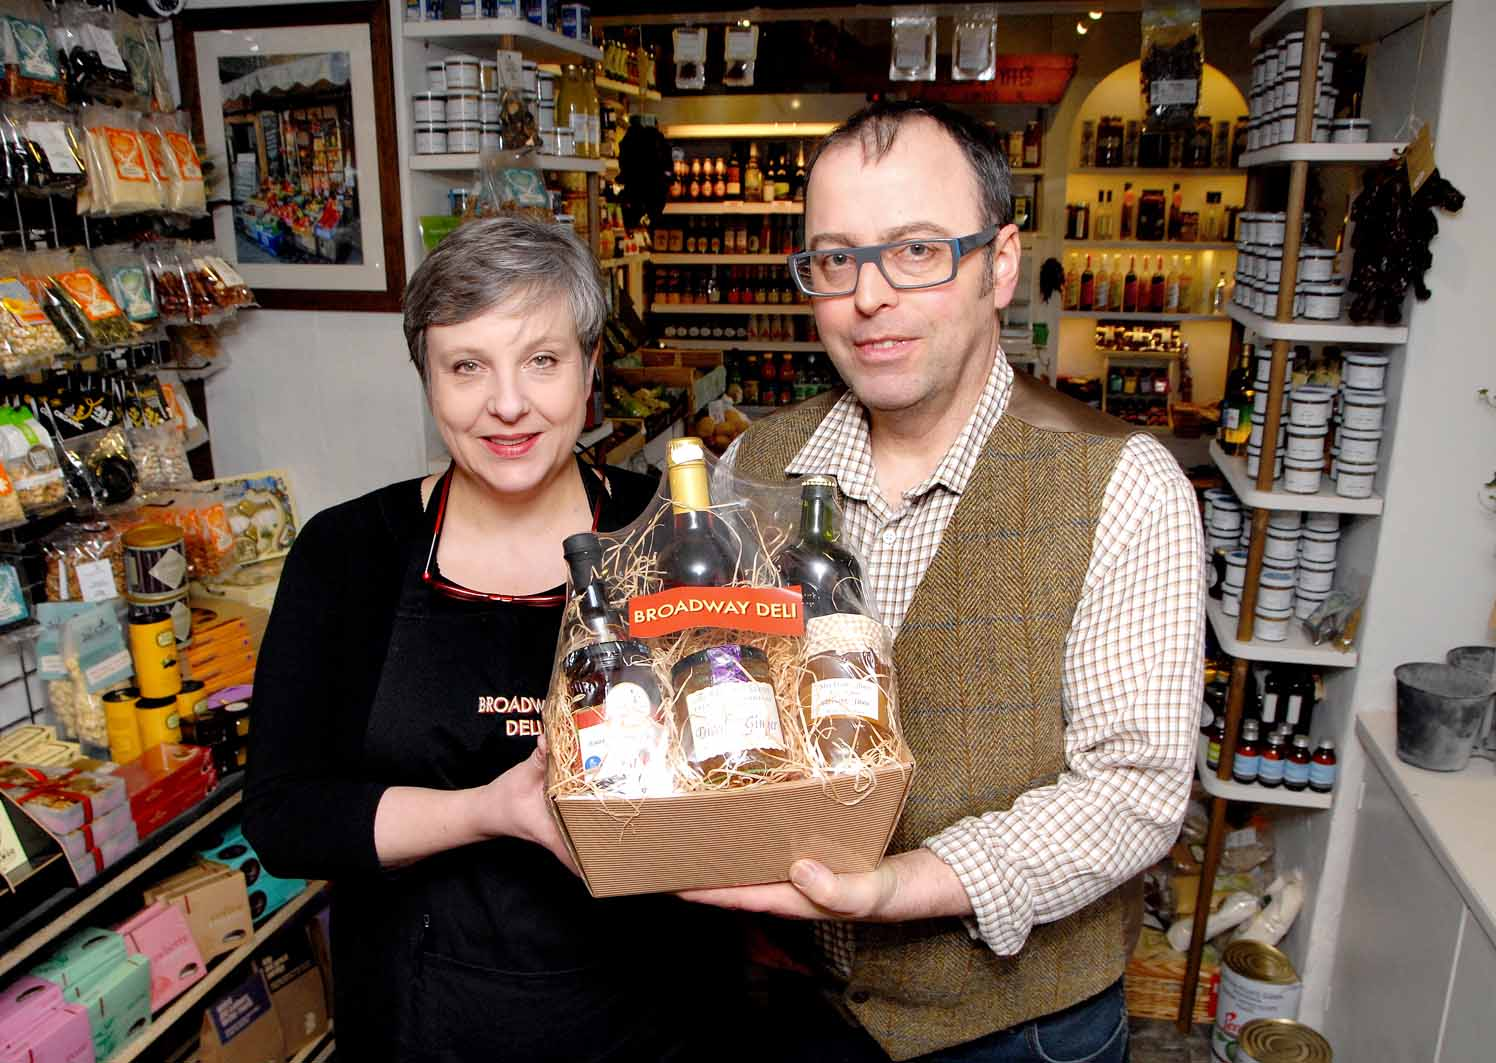 From left - Louise Hunt and Alan Frinley, owners of Broadway Deli which has moved premises. (3557901)